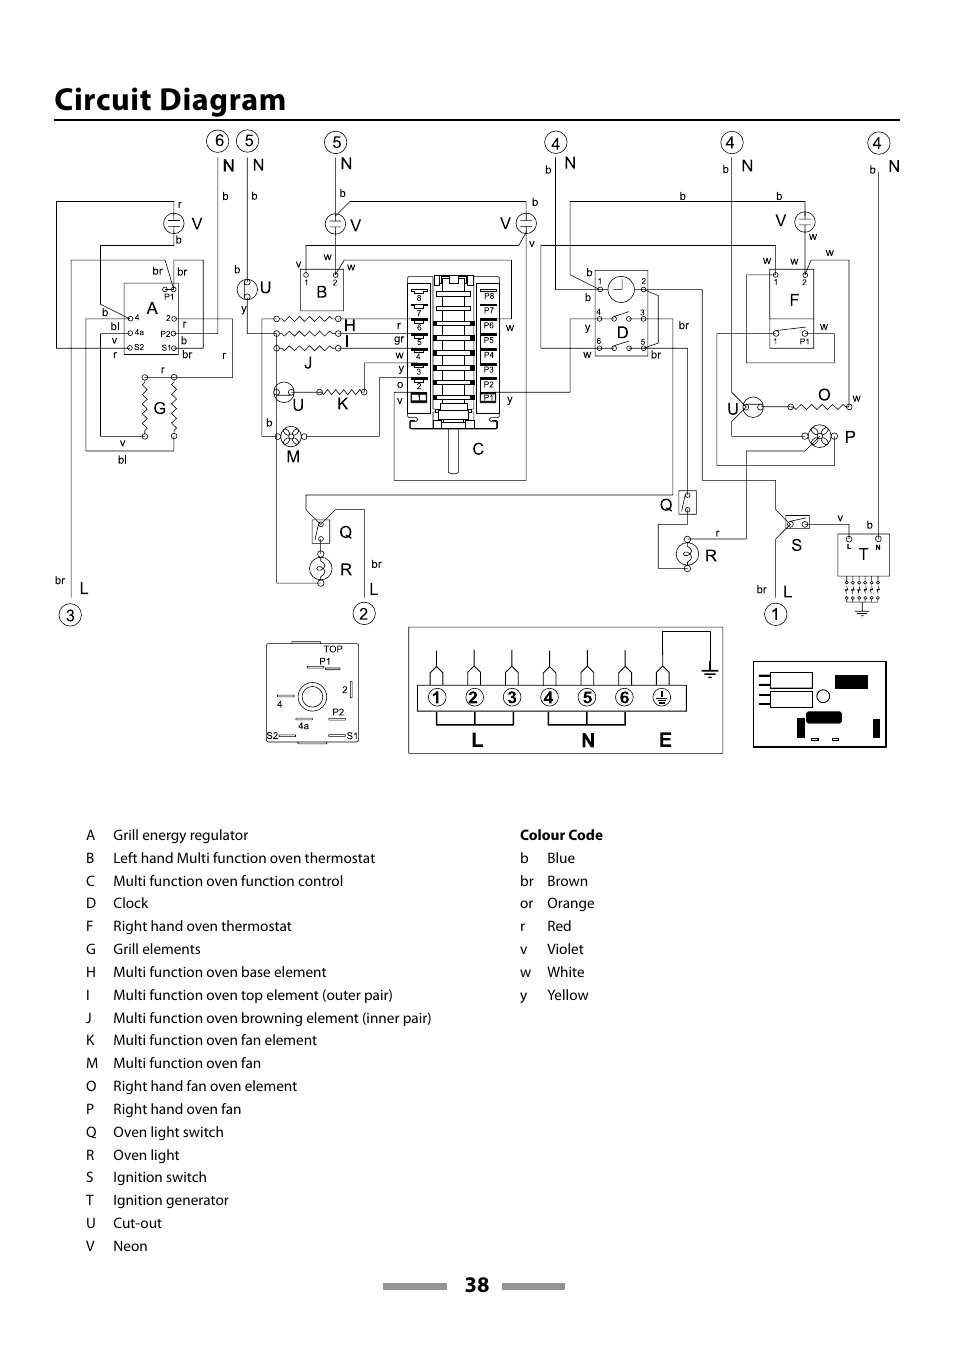 Circuit Diagram Rangemaster 110 Dual Fuel U109600 02 User Manual Moto G Page 38 40